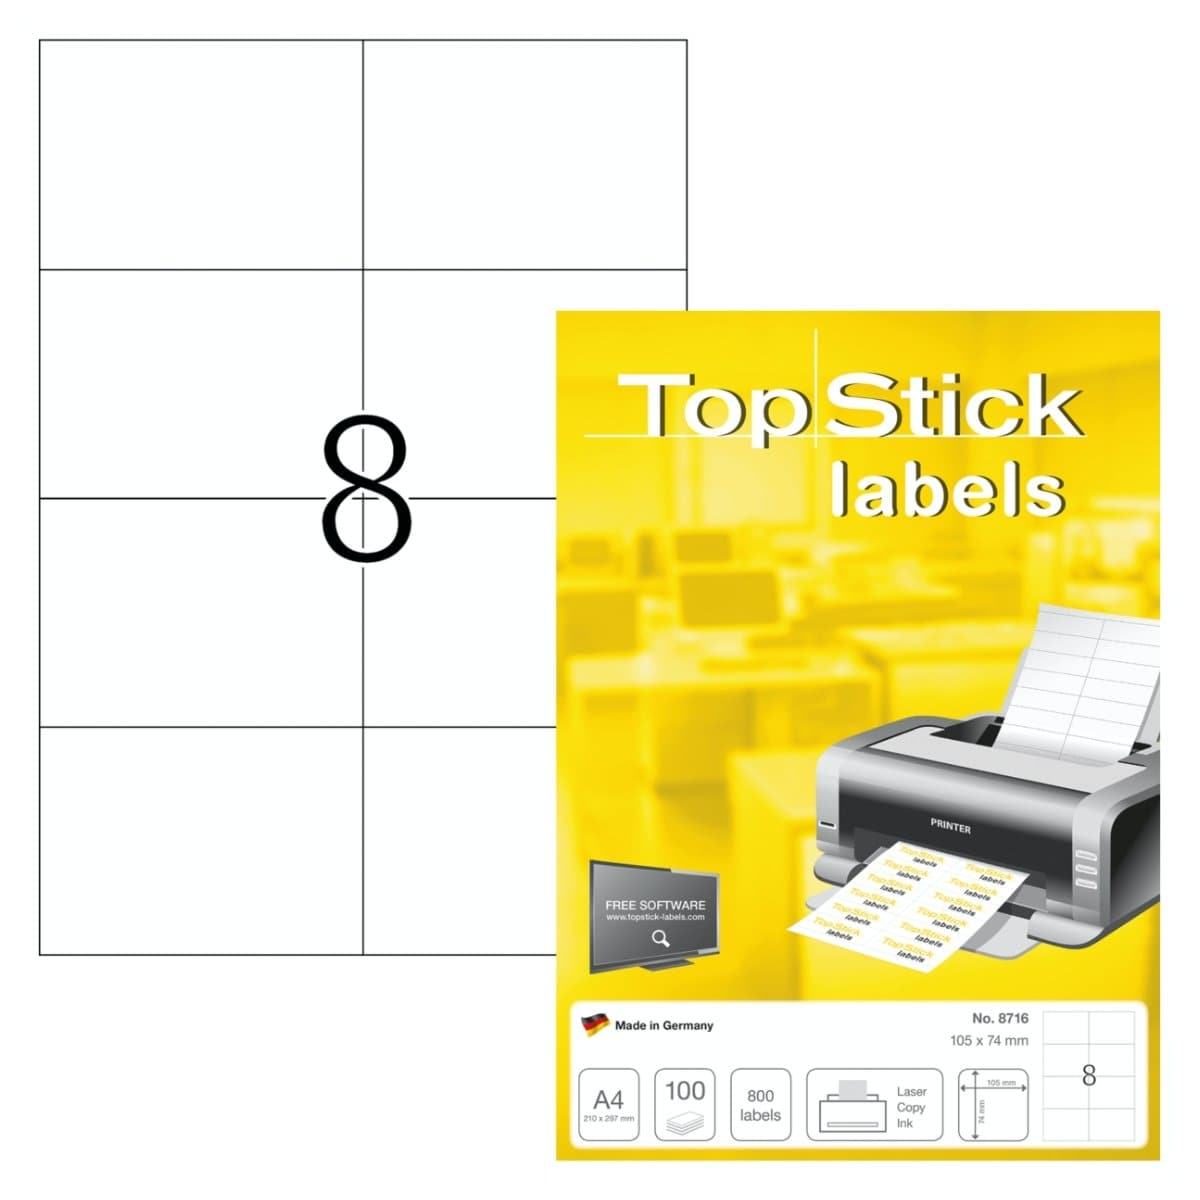 TopStick labels 8 labels/sheet, sharp corners, 105 x 74 mm, 100sheets/pack, White